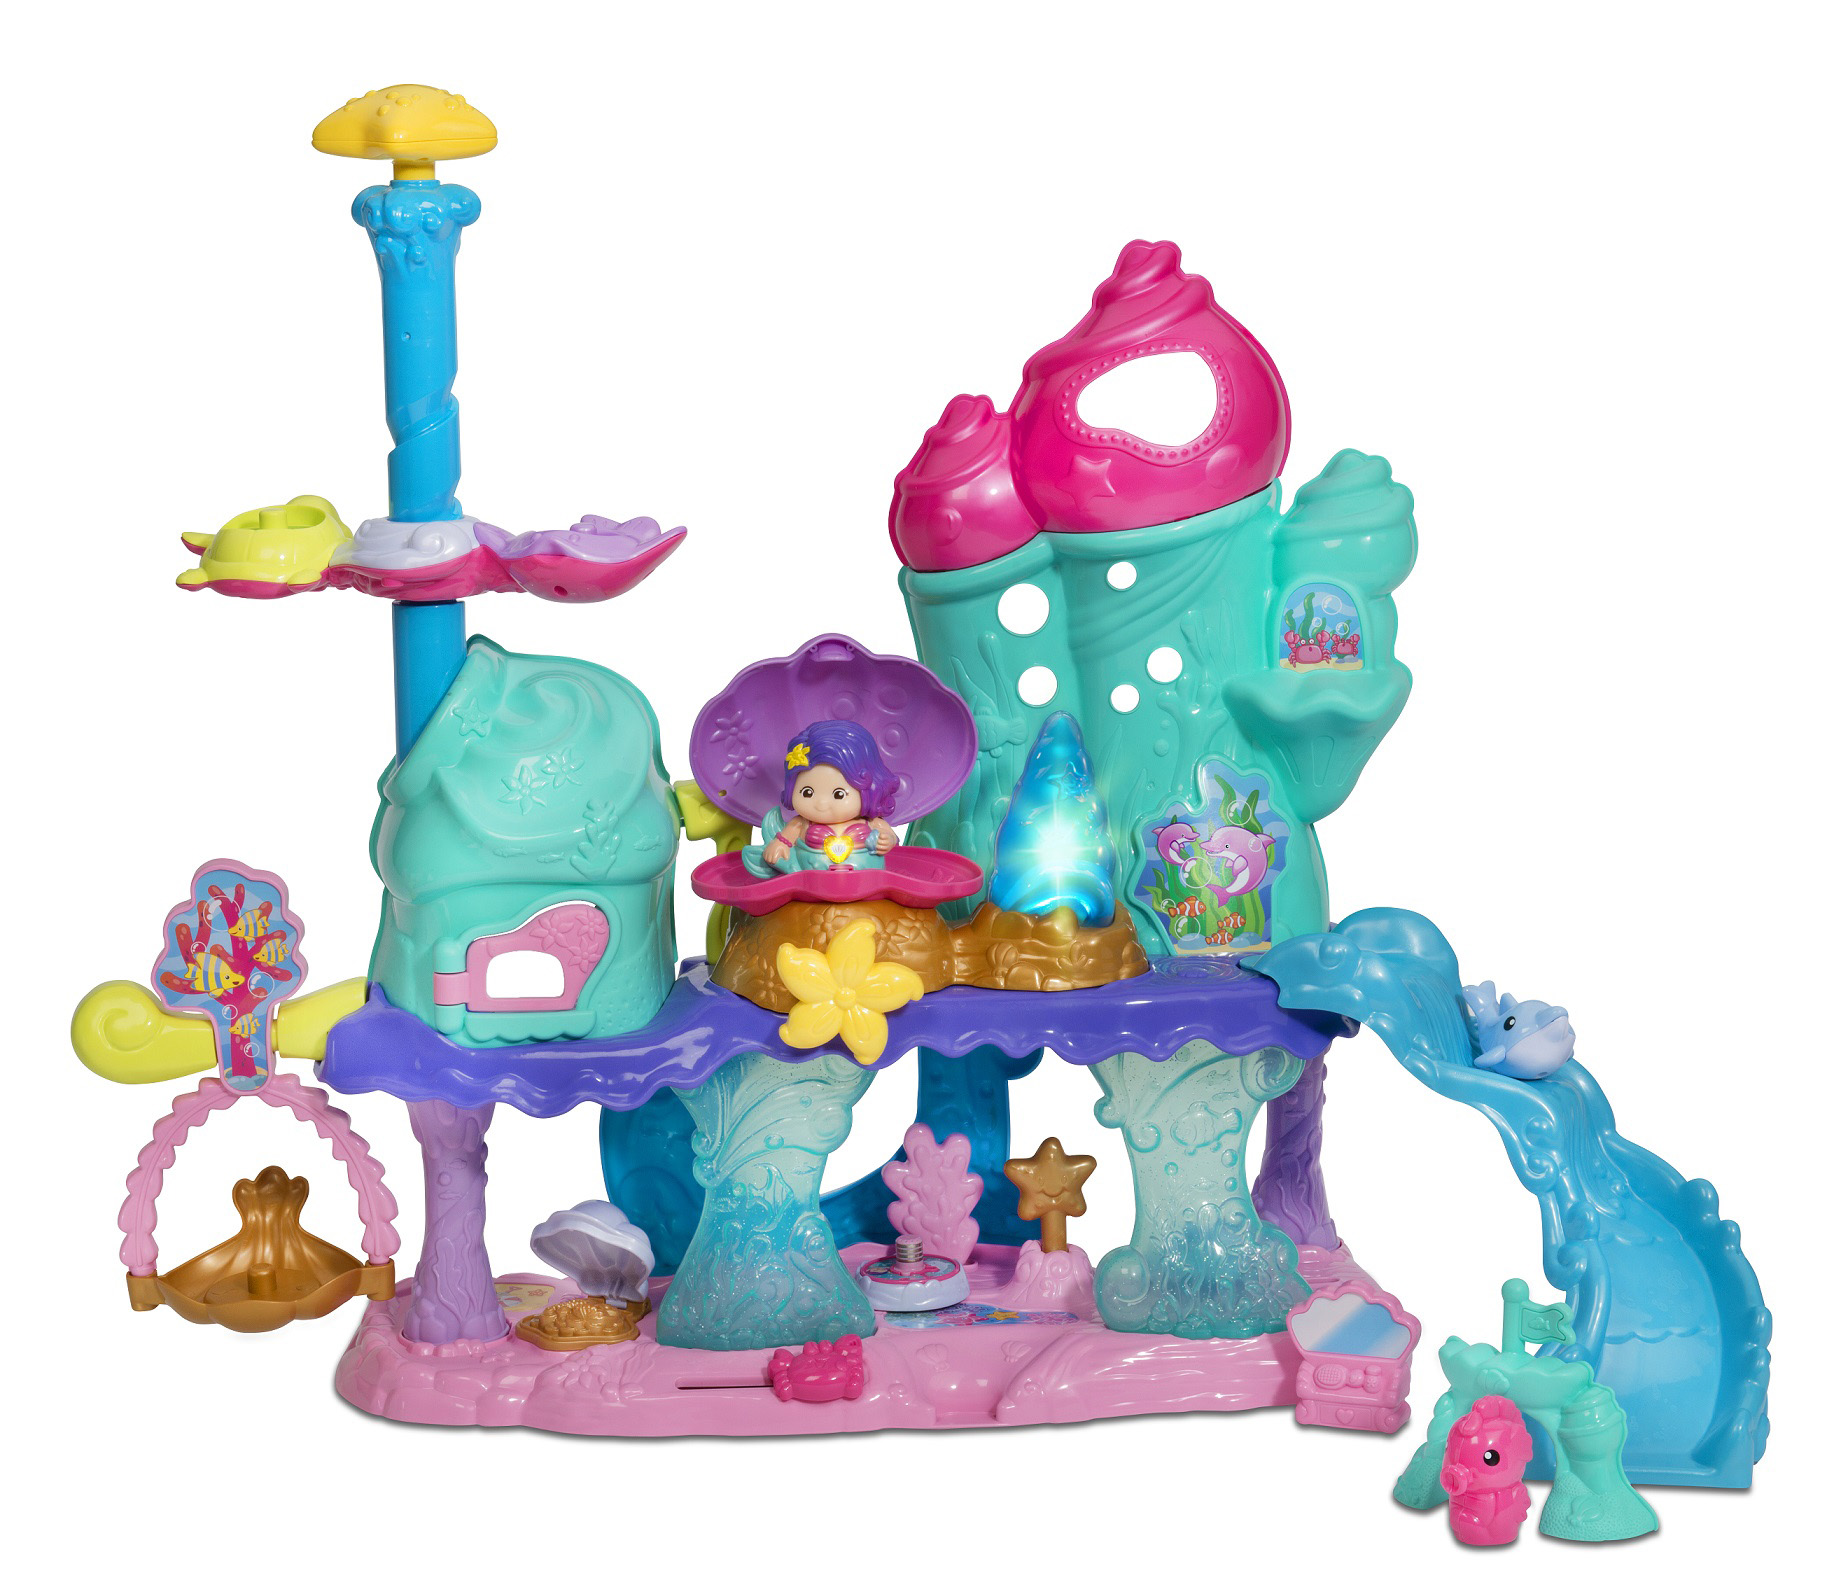 Toy Castles For Toddler Boys : Vtech sparks children s imaginations with engaging new go